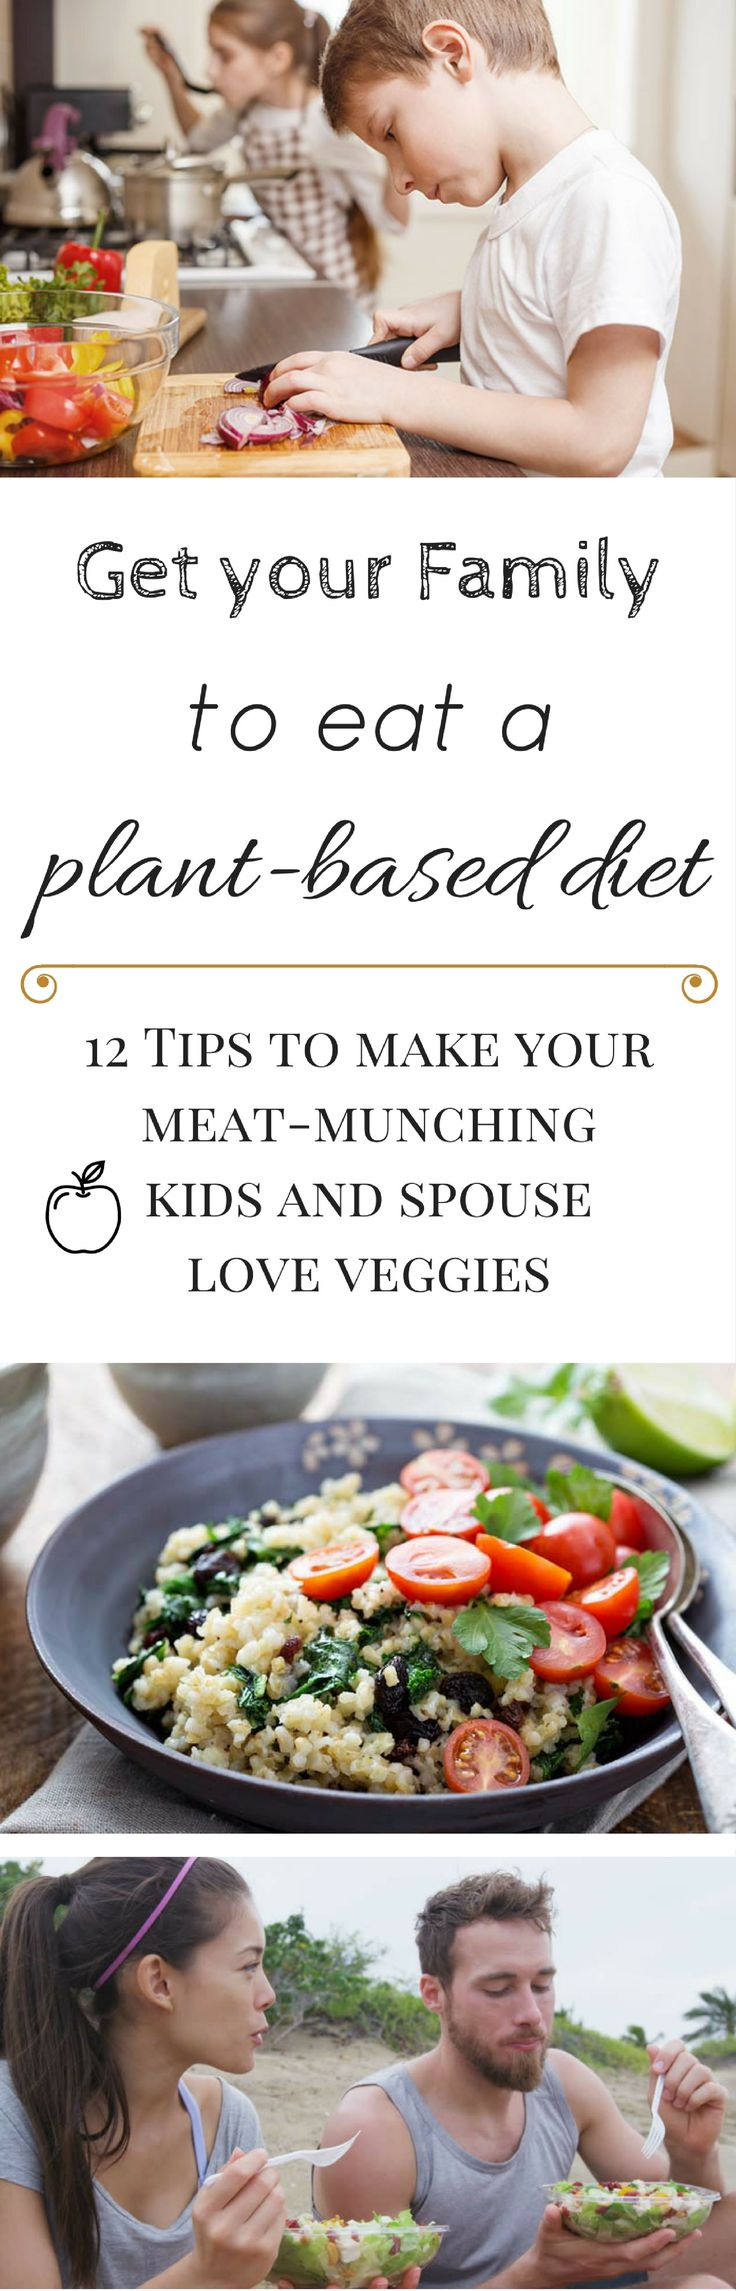 Are you the only #Vegan at home and would like your family to transition to this #Diet as well? Here are some ideas on how to get your meat-loving spouse and kids to embrace veggies and get away from the animal products.